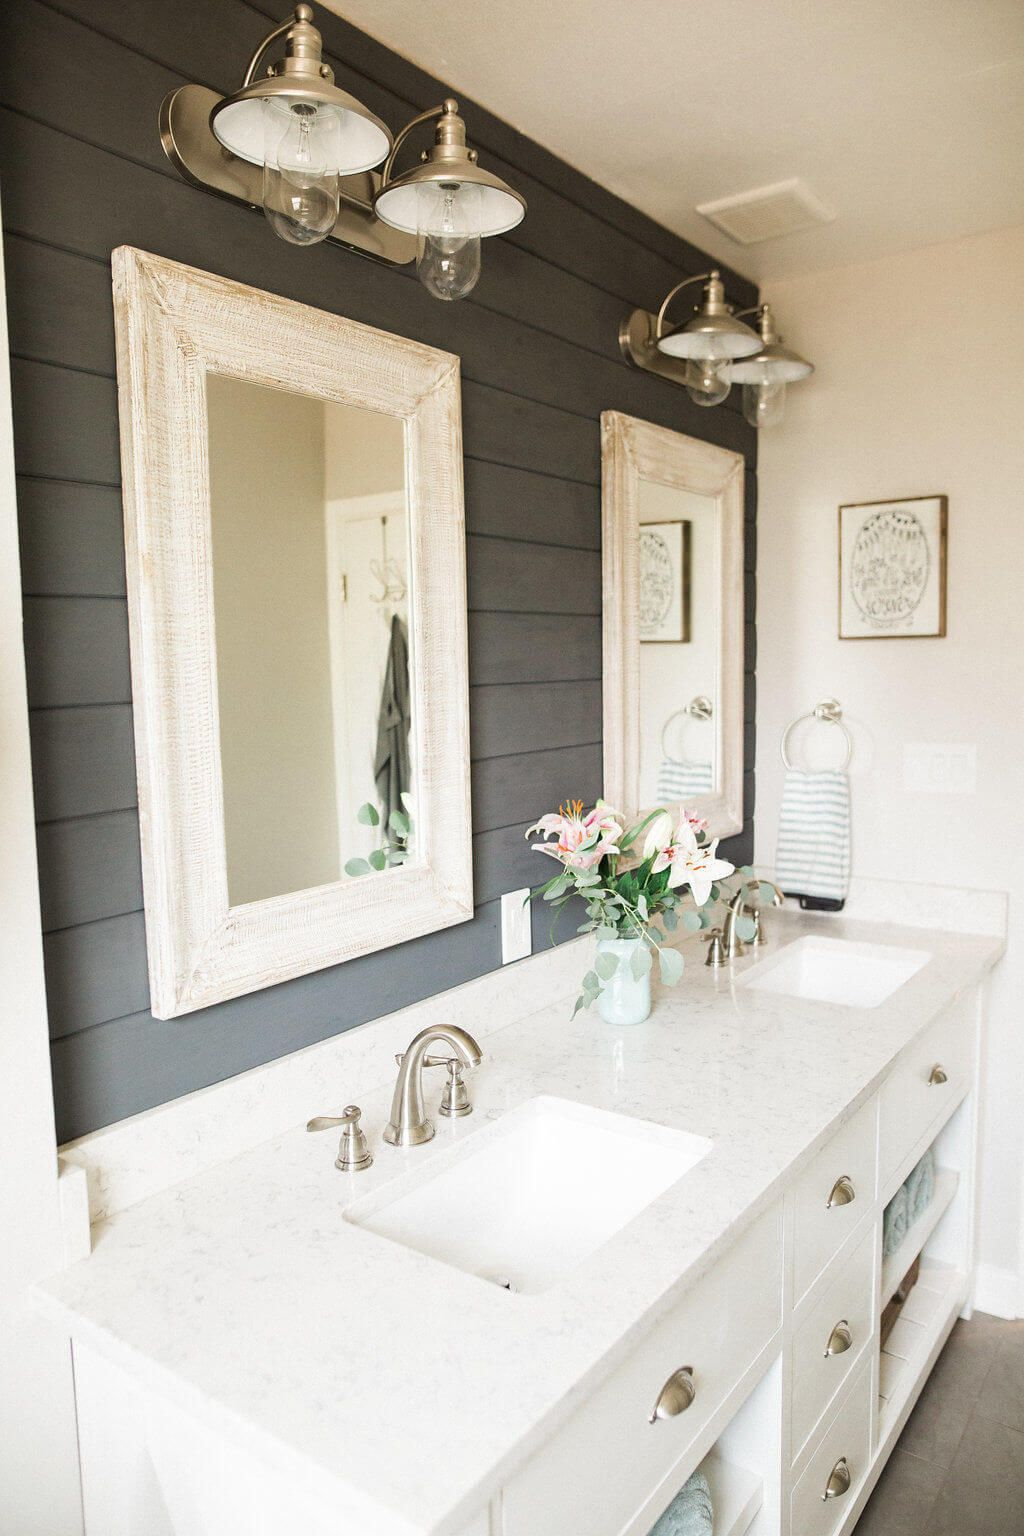 32 Rustic to Ultra Modern Master Bathroom Ideas to Inspire Your Next ...